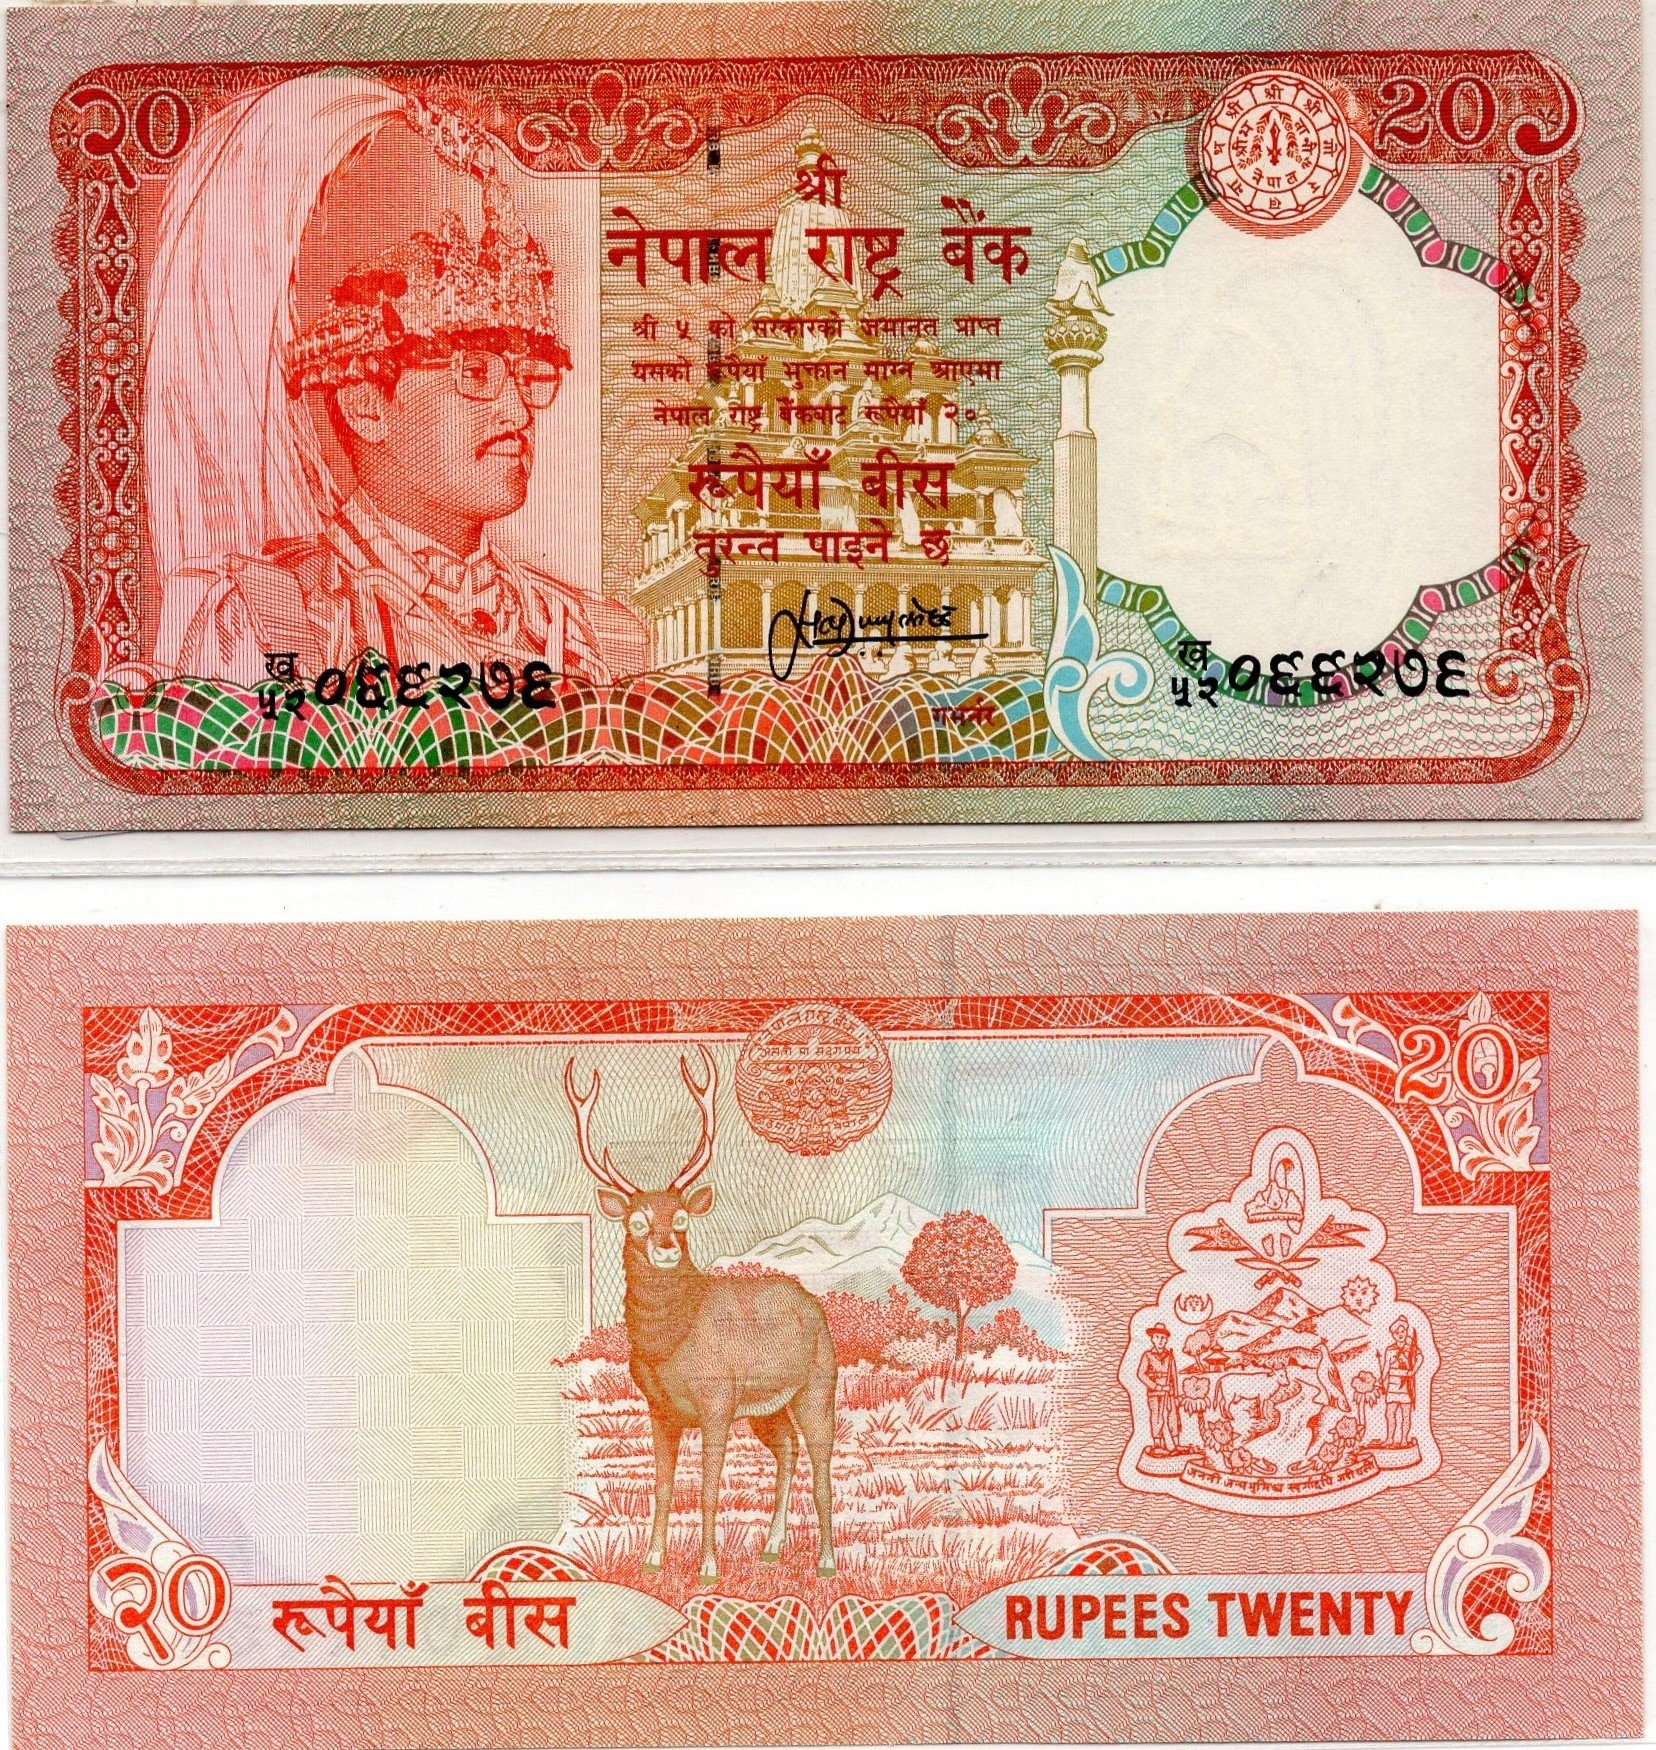 Nepal 20 rupees banknote for sale